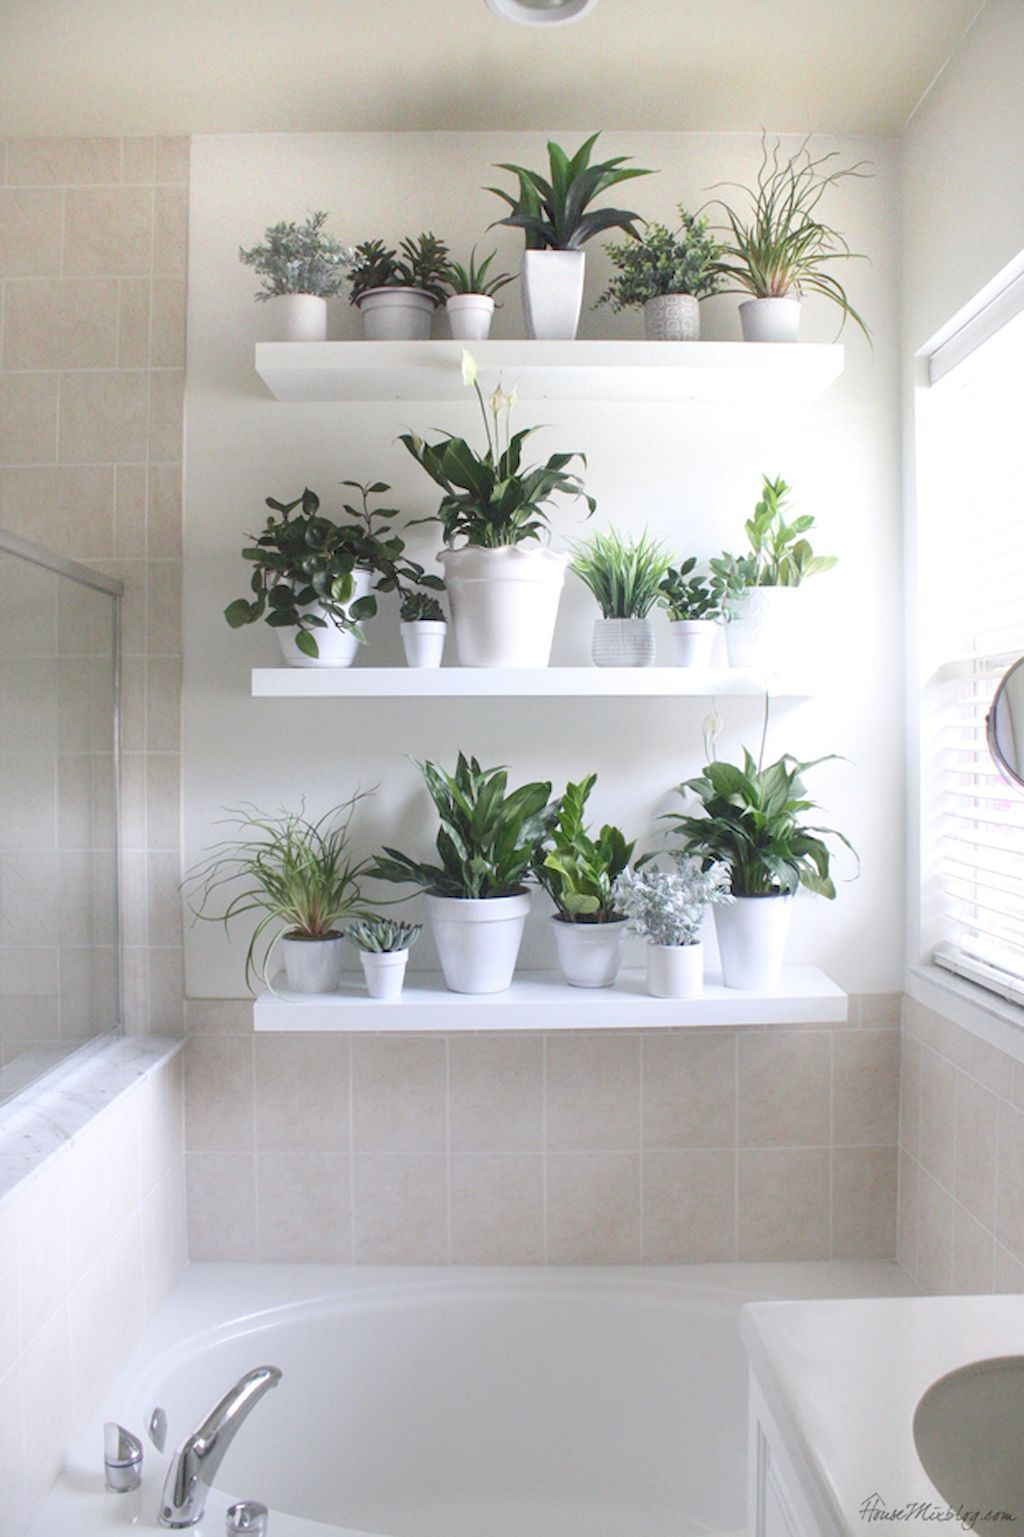 75 Clever Small Bathroom Storage and Organization Ideas | Small ...